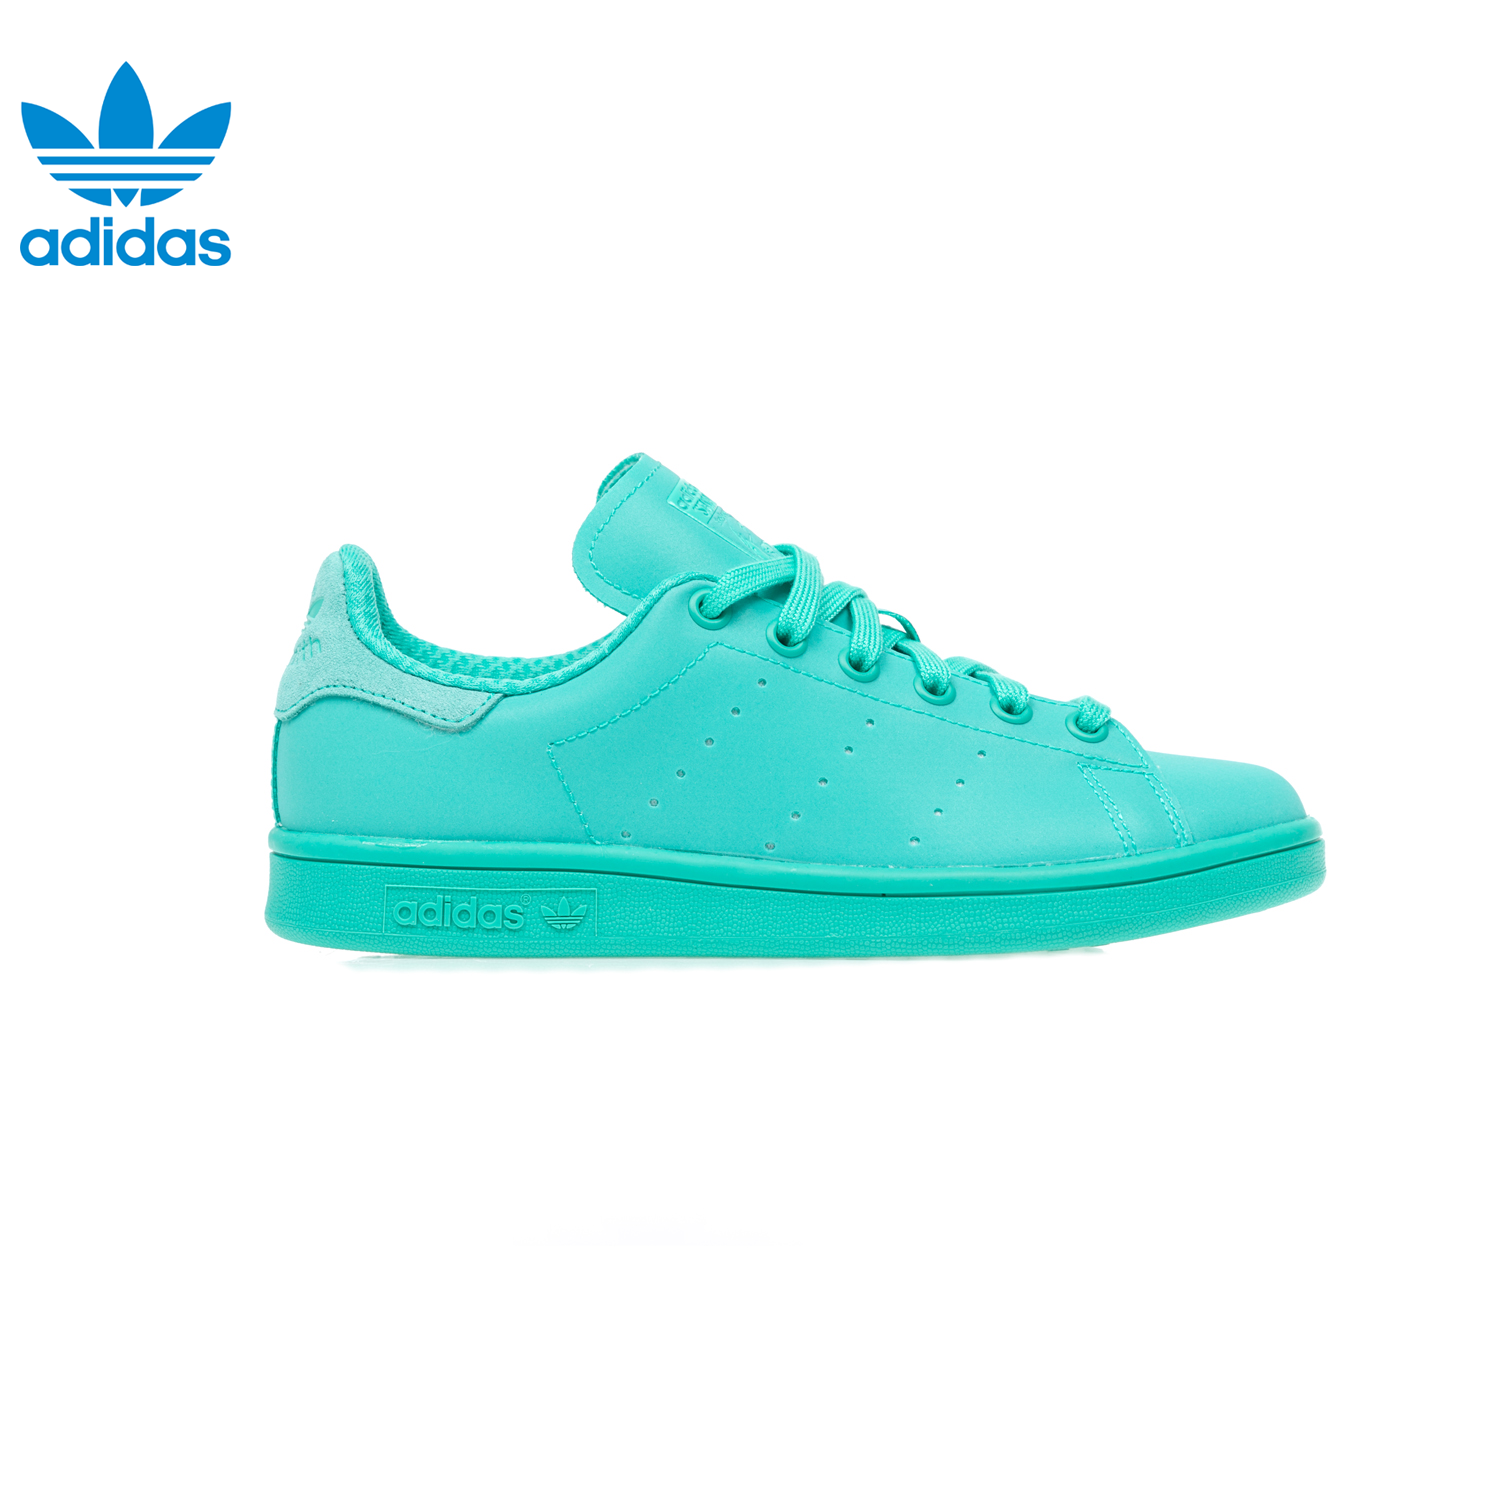 adidas – Unisex παπούτσια adidas STAN SMITH ADICOLOR πράσινα